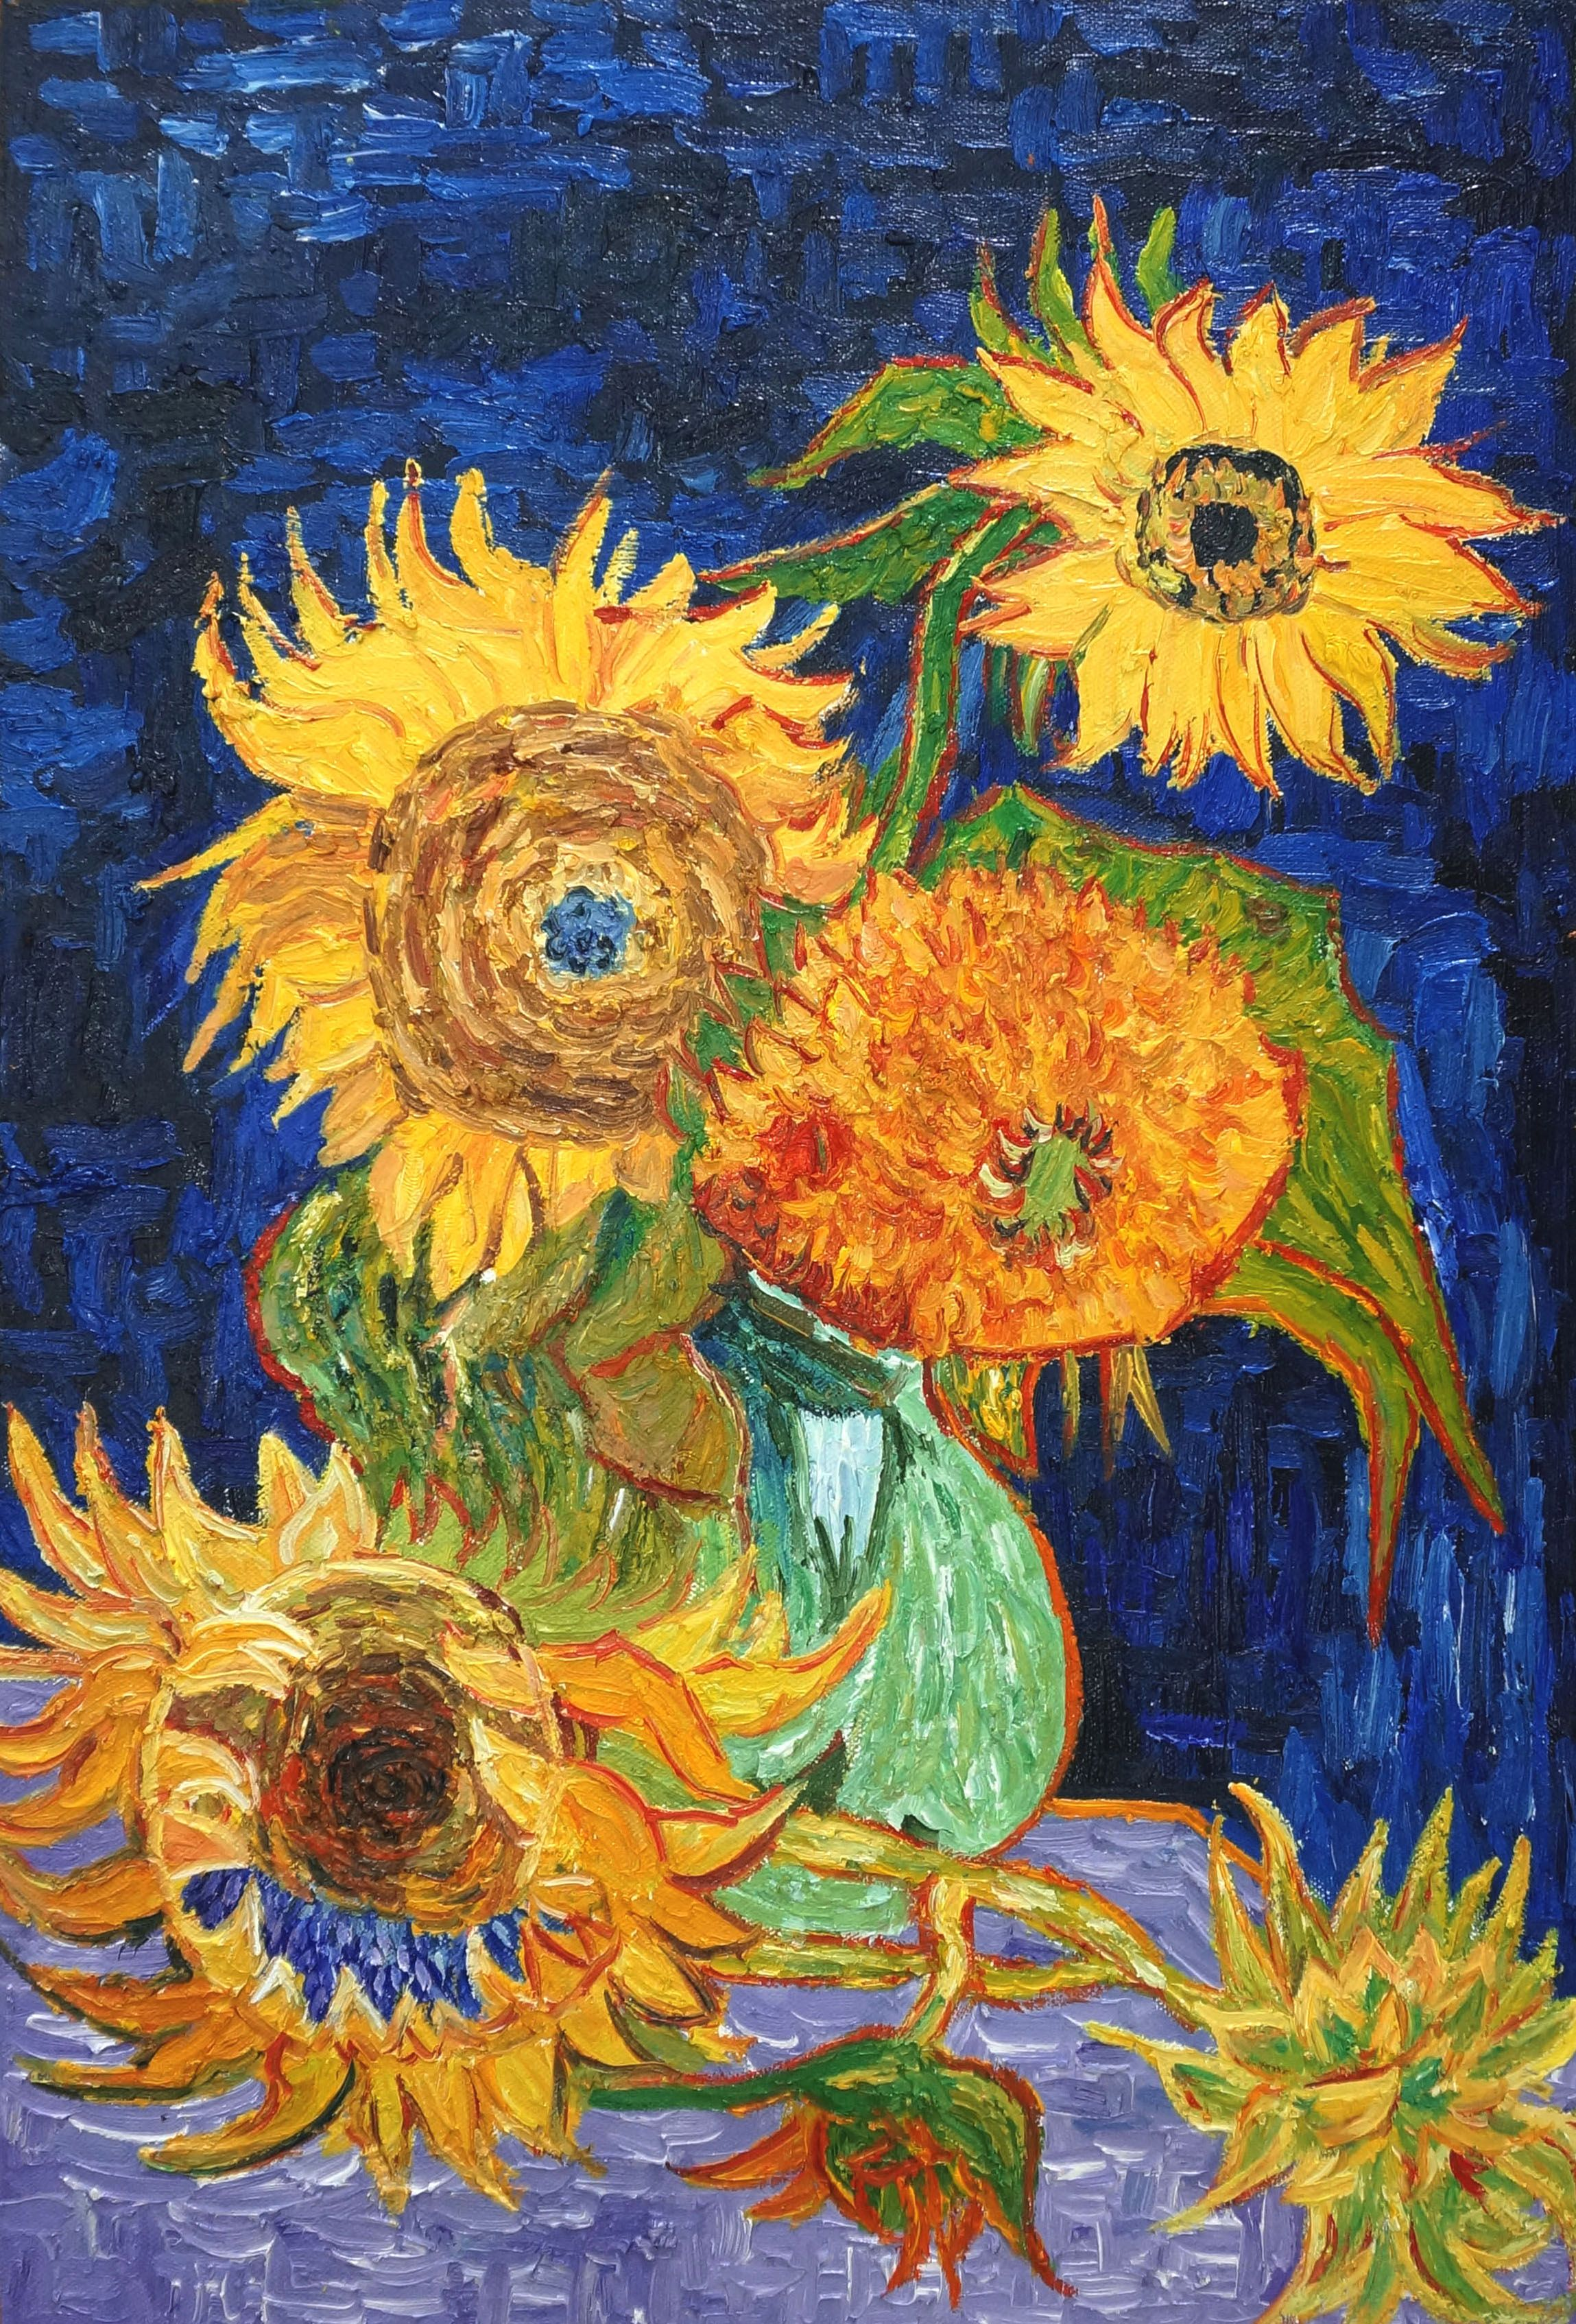 4c391e0eeee37 Vase with Five Sunflowers Oil Painting Reproduction Canvas by ...